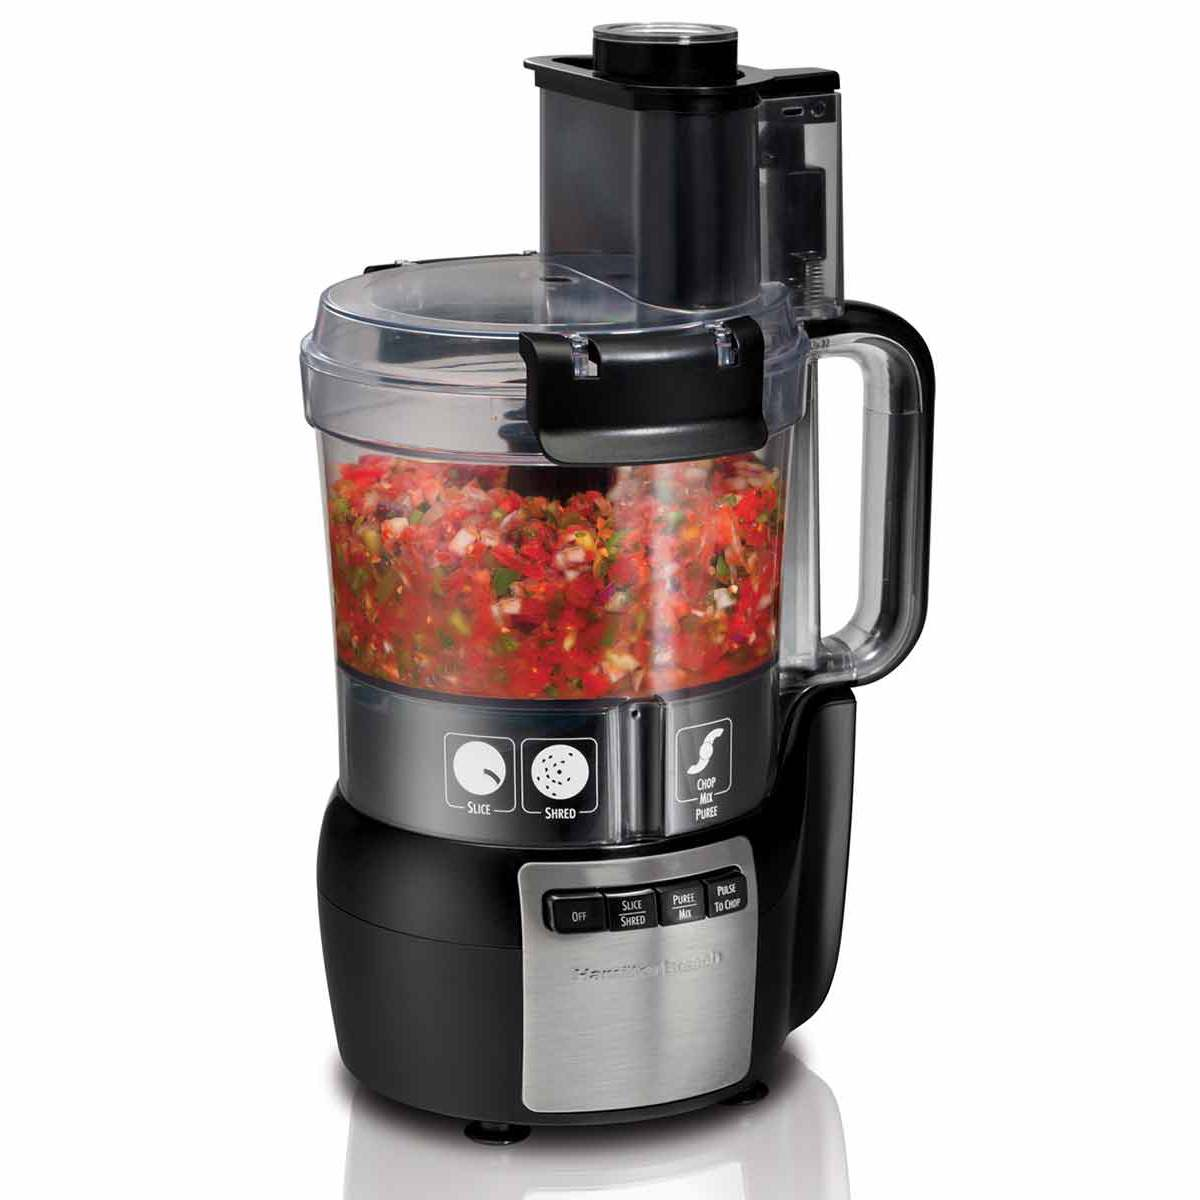 10-Cup Stack & Snap™ Food Processor with Big Mouth®, Black & Stainless (70721)